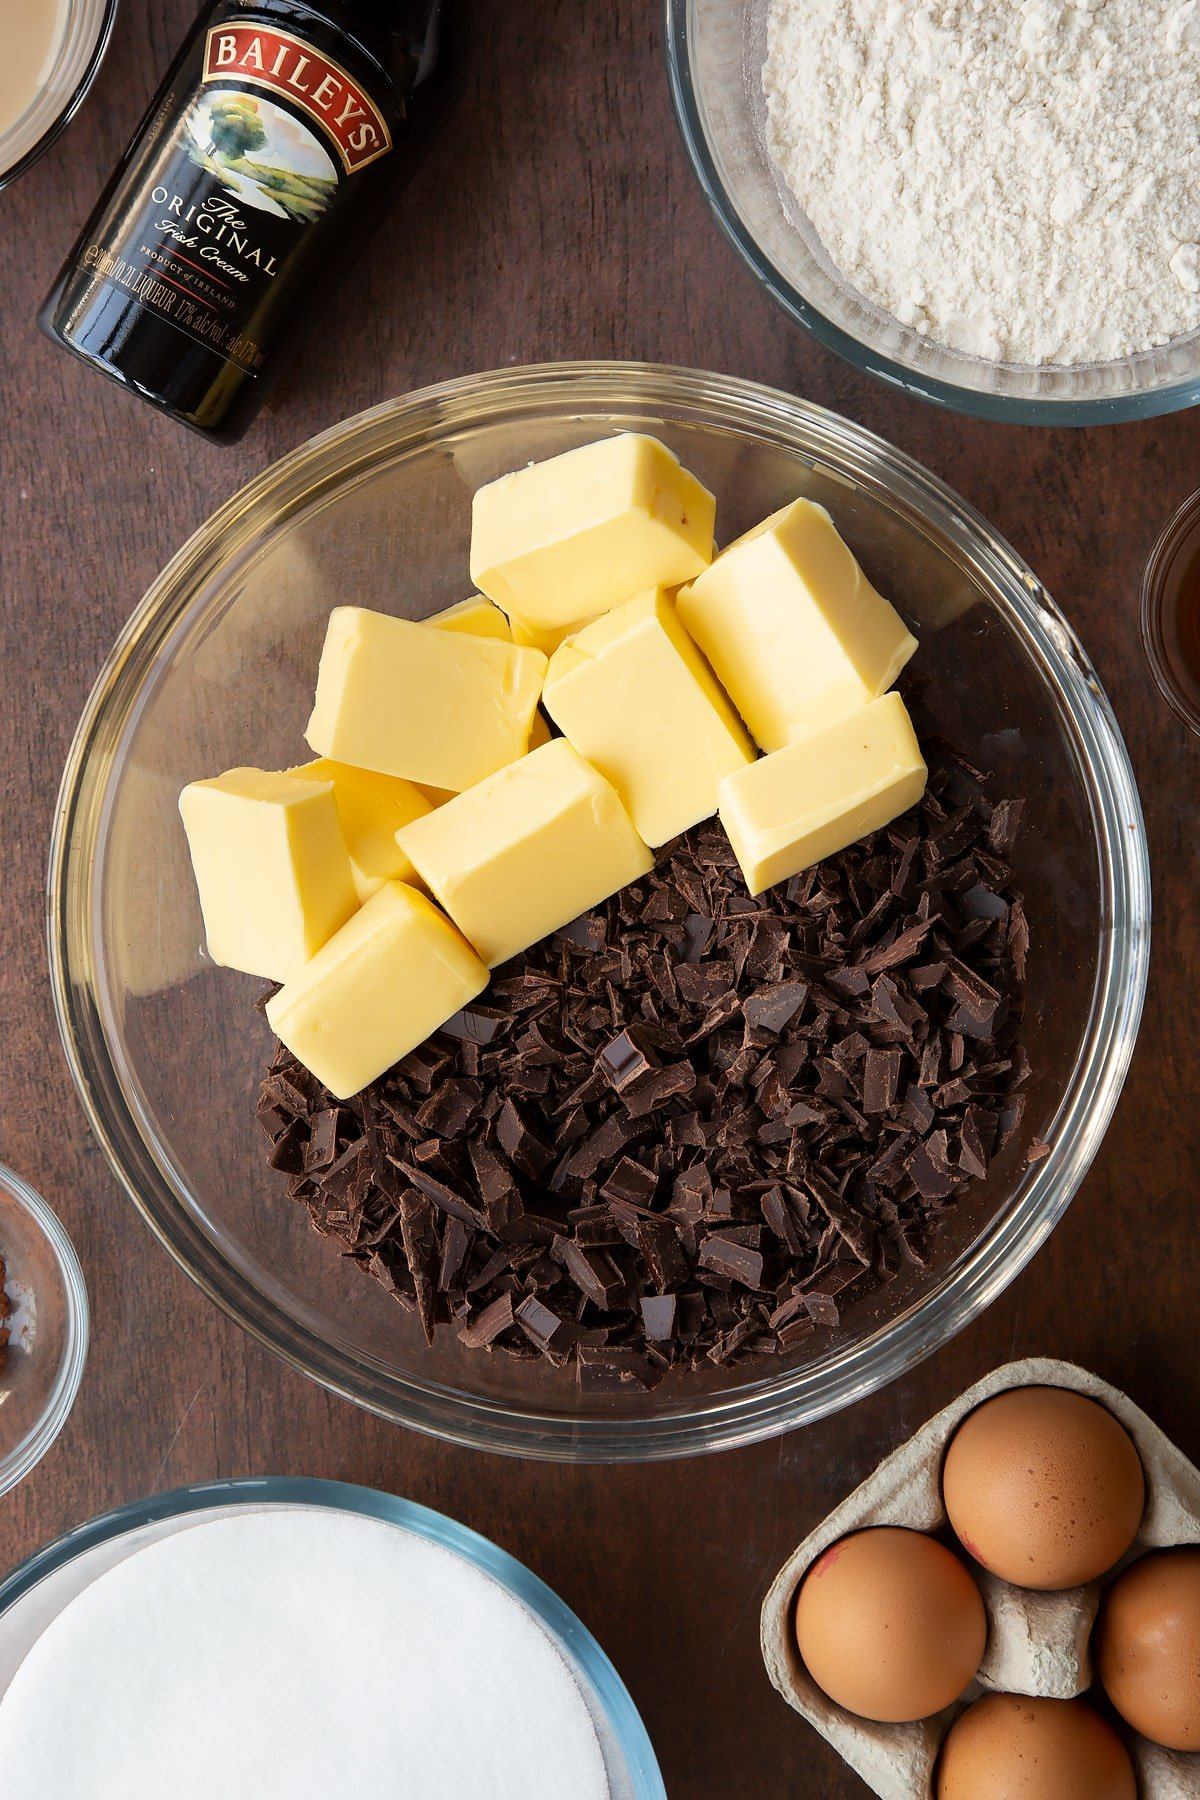 Chopped dark chocolate and cubed butter in a glass bowl. Ingredients to make Baileys brownies surround the bowl.